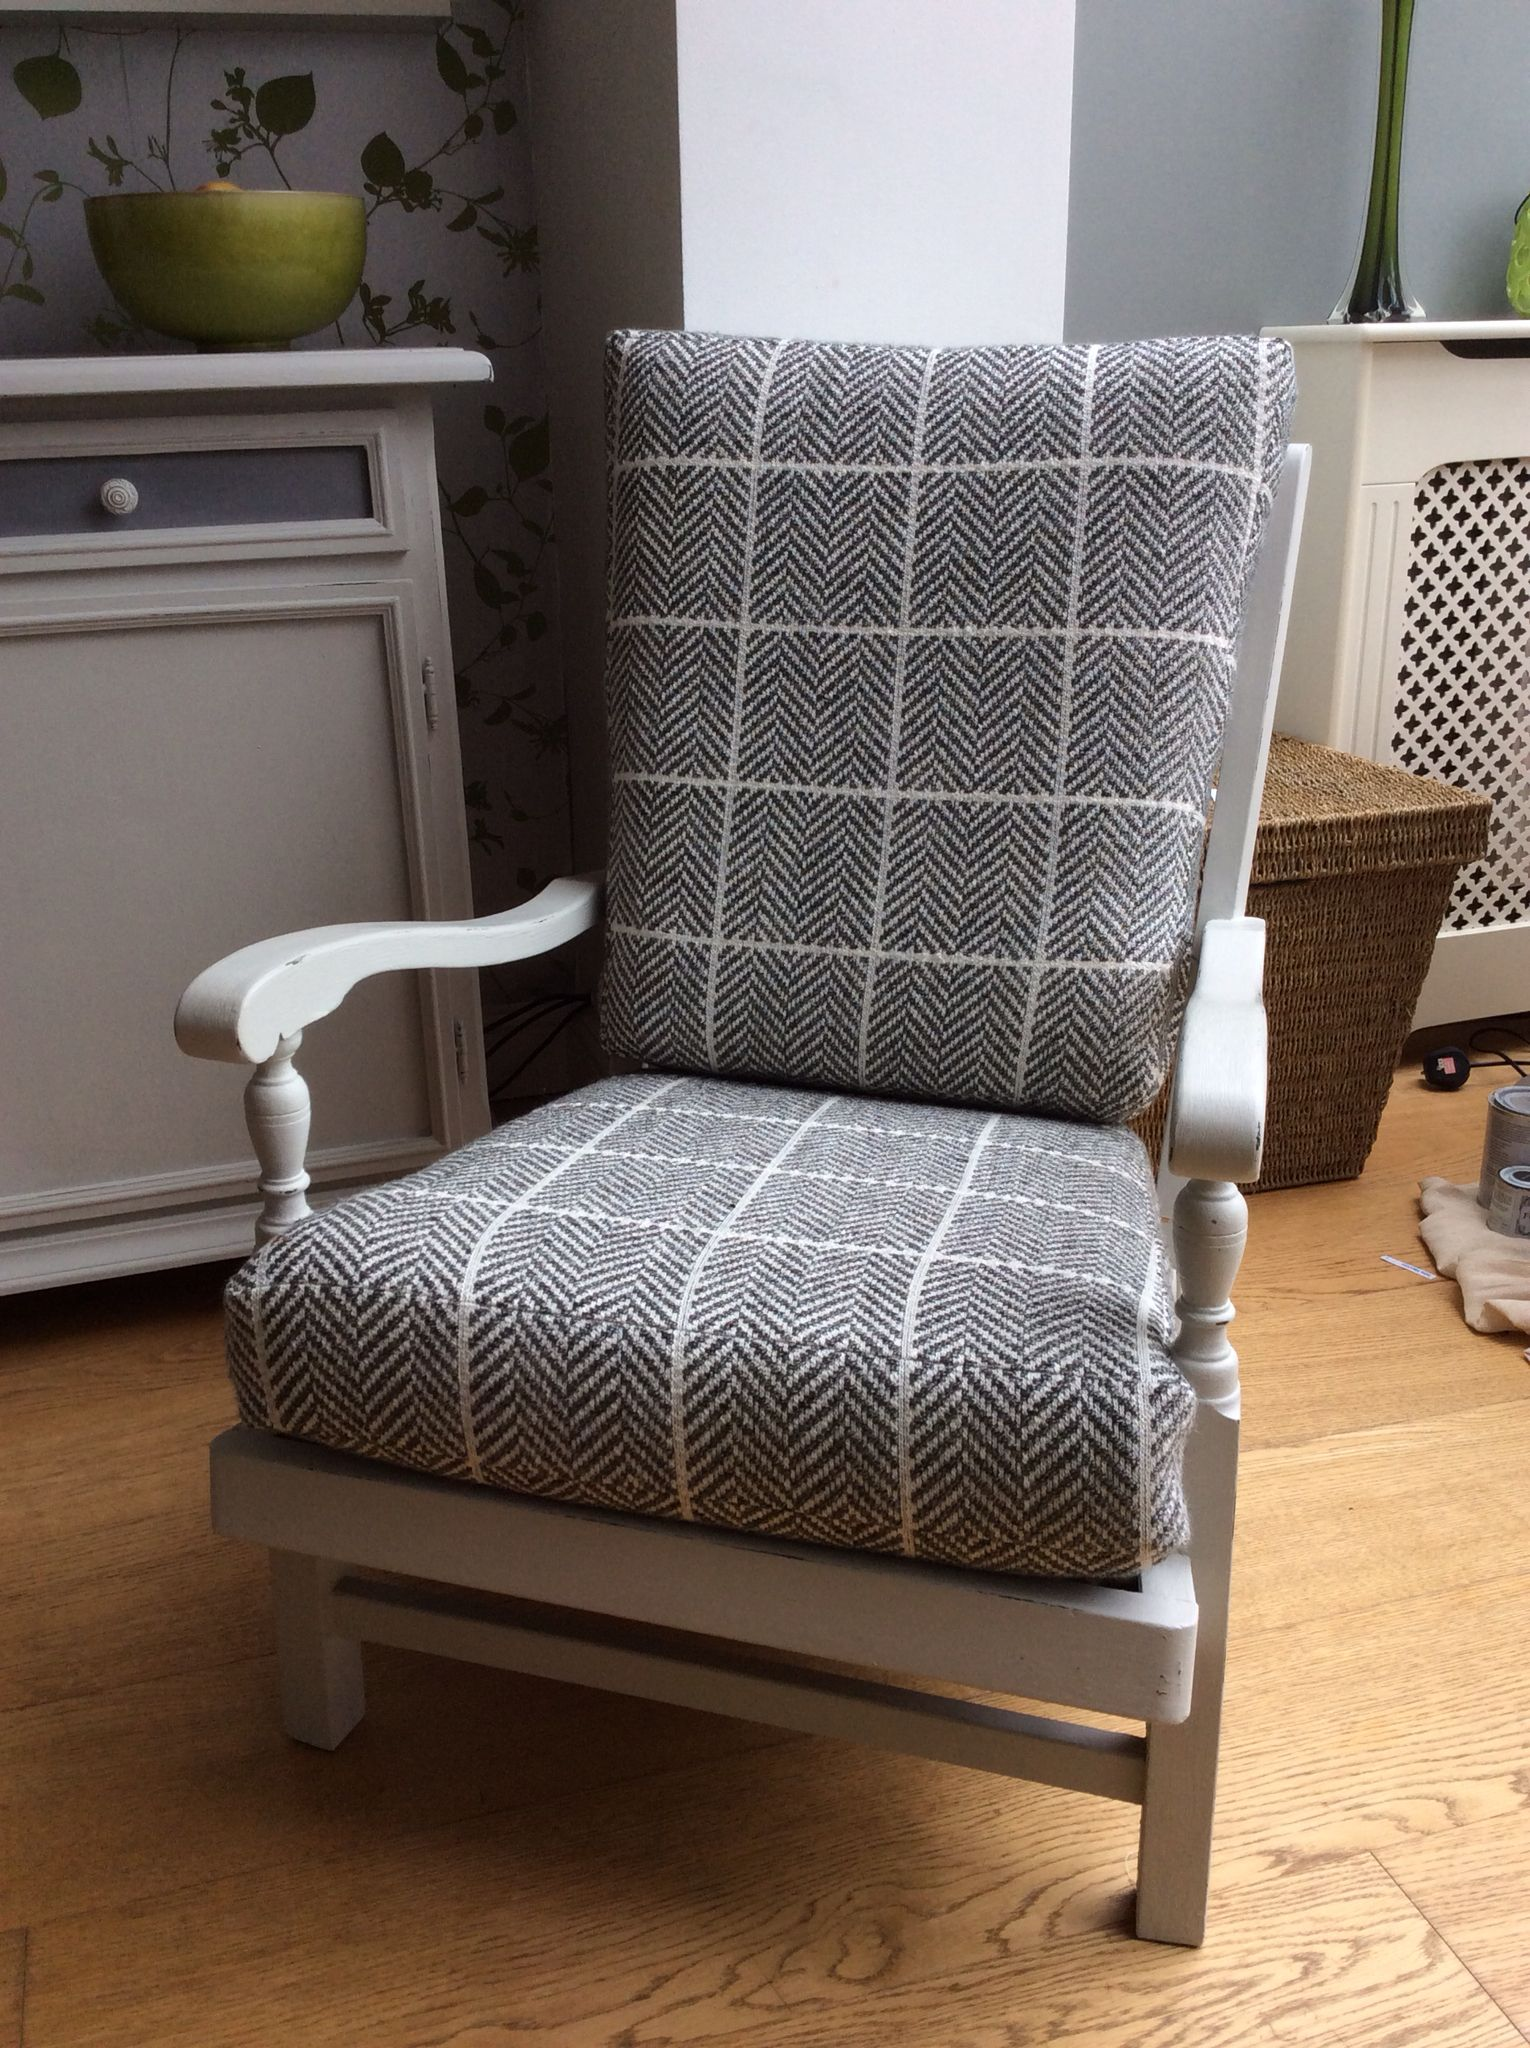 Finished Chair Painted In Rustoleum Winter Grey